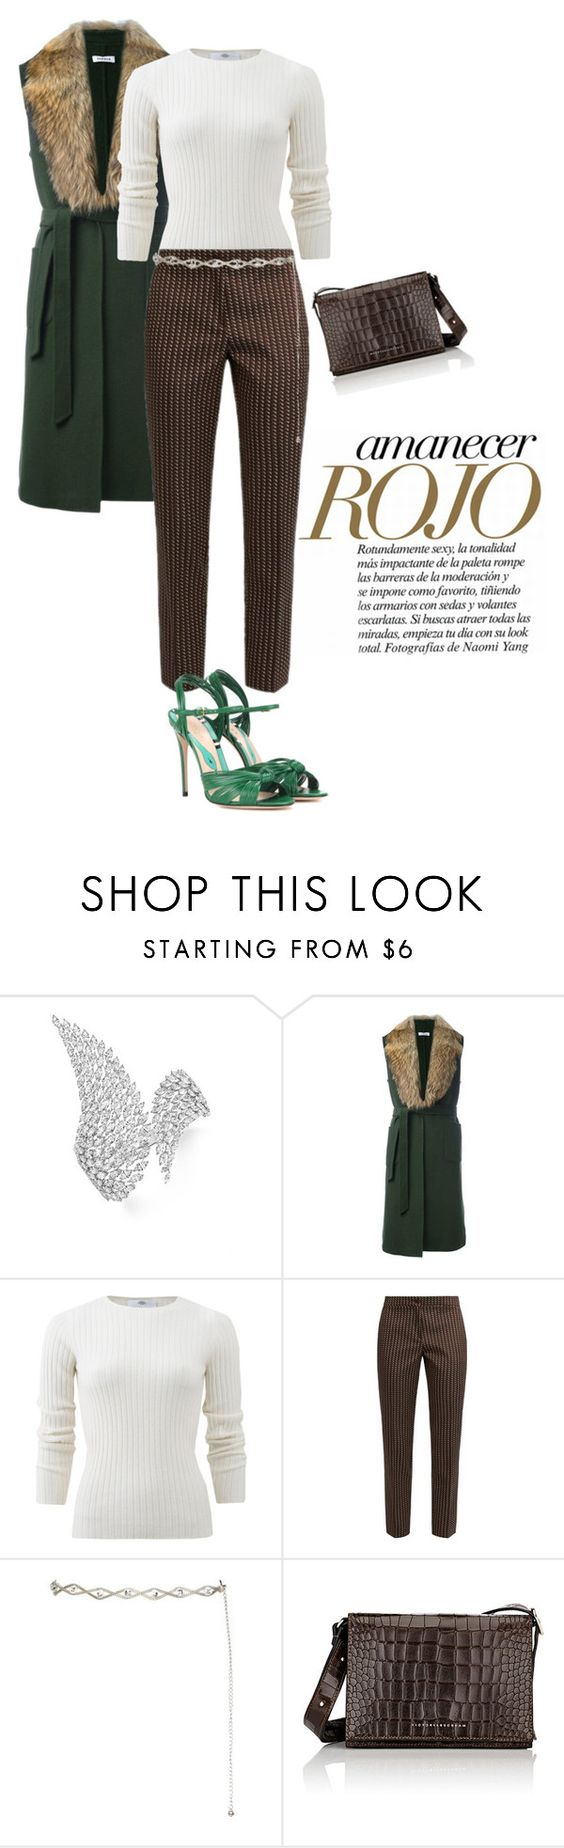 """""""Без названия #874"""" by marina-smile-nazarenko ❤ liked on Polyvore featuring Messika, P.A.R.O.S.H., Allude, Etro, Victoria Beckham and Gucci"""